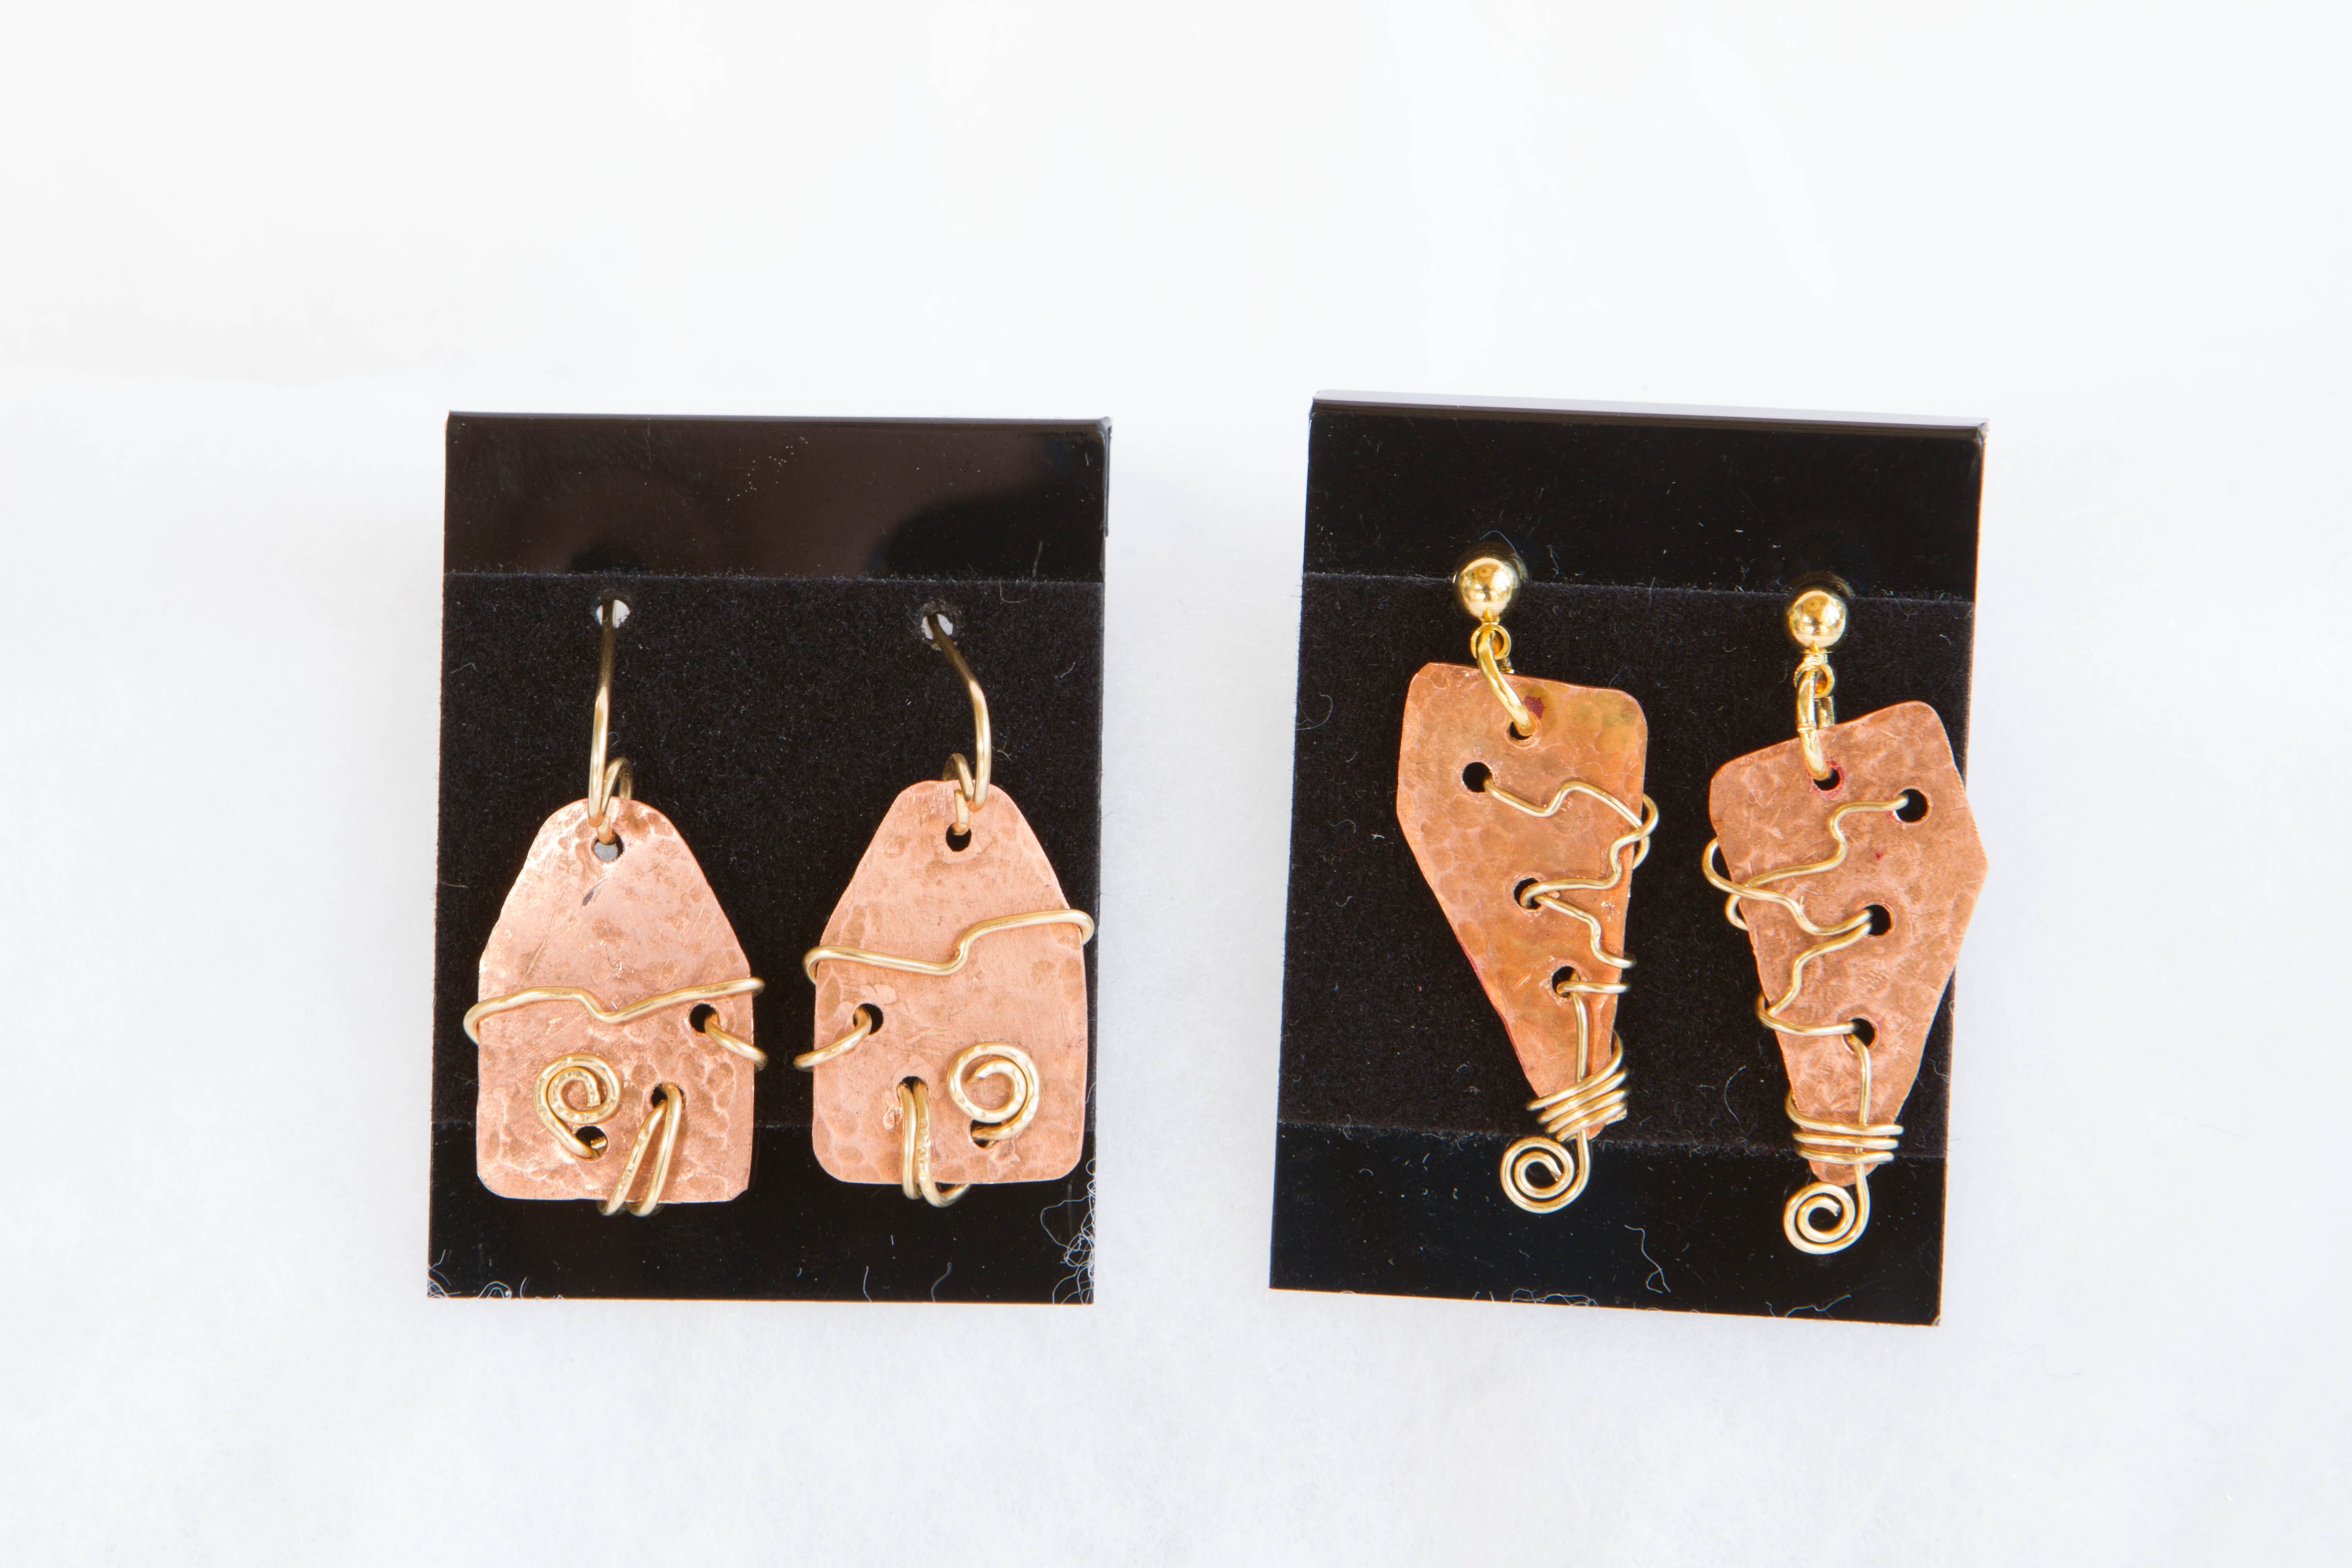 recycled copper with gold colored wire wrap